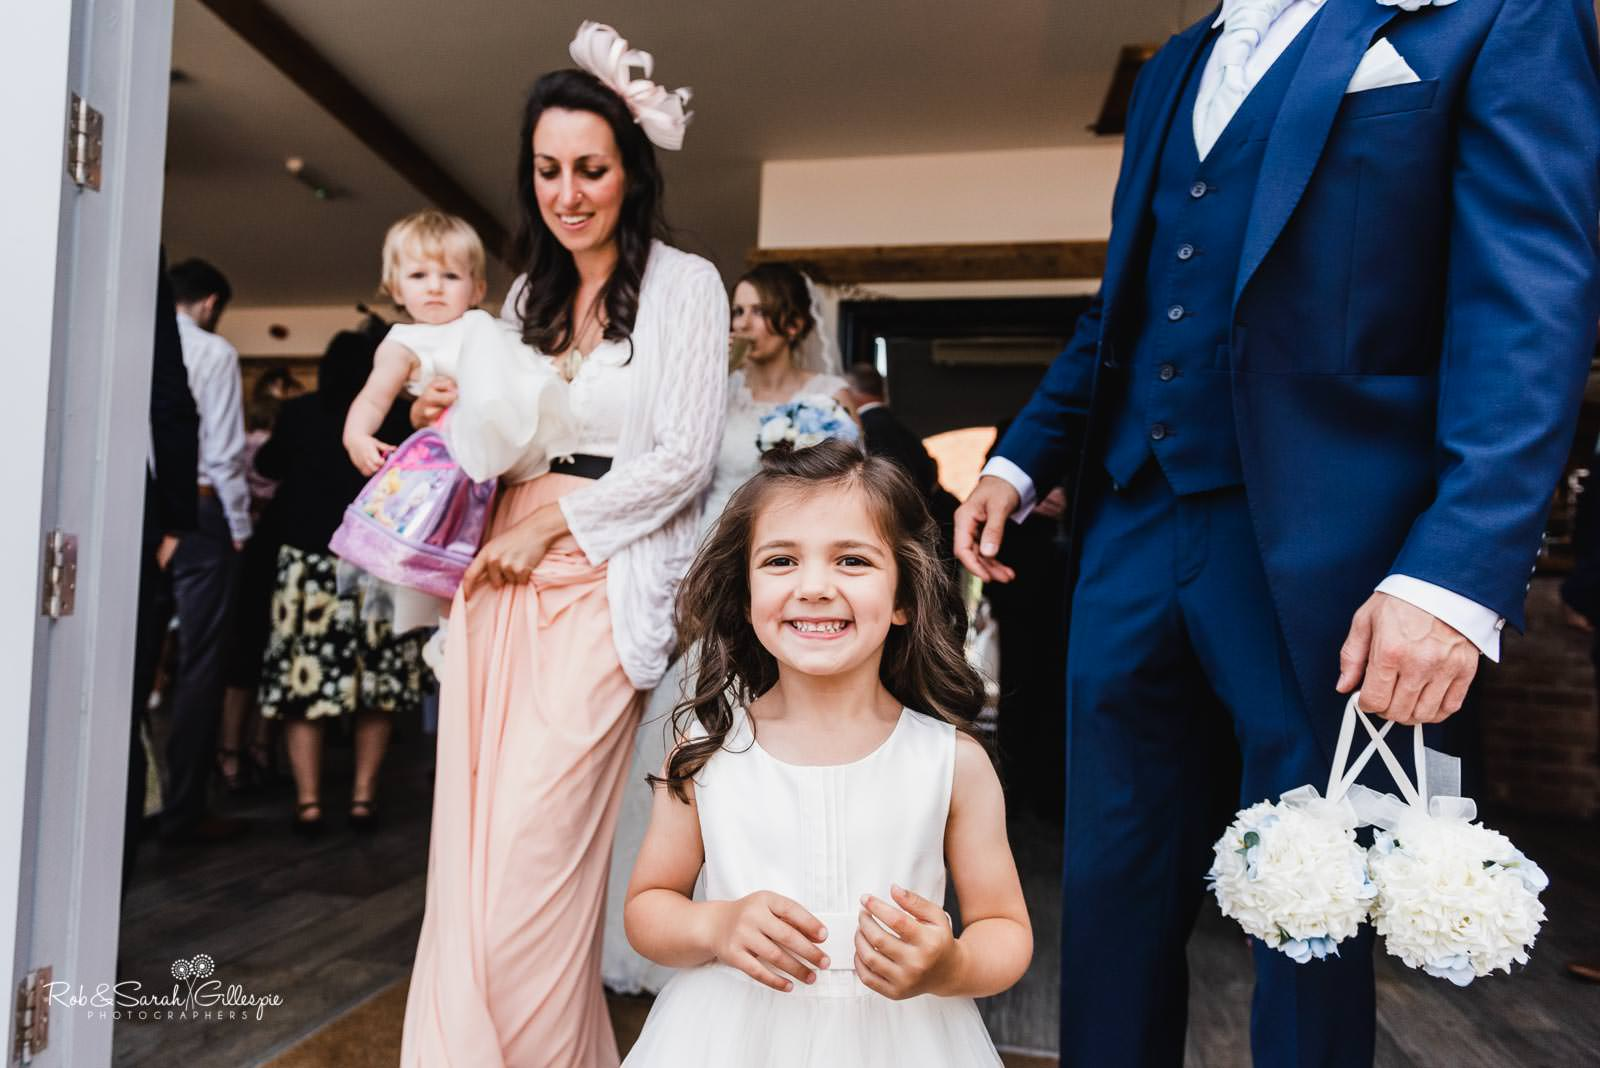 Flowergirl at Swallows Nest Barn wedding